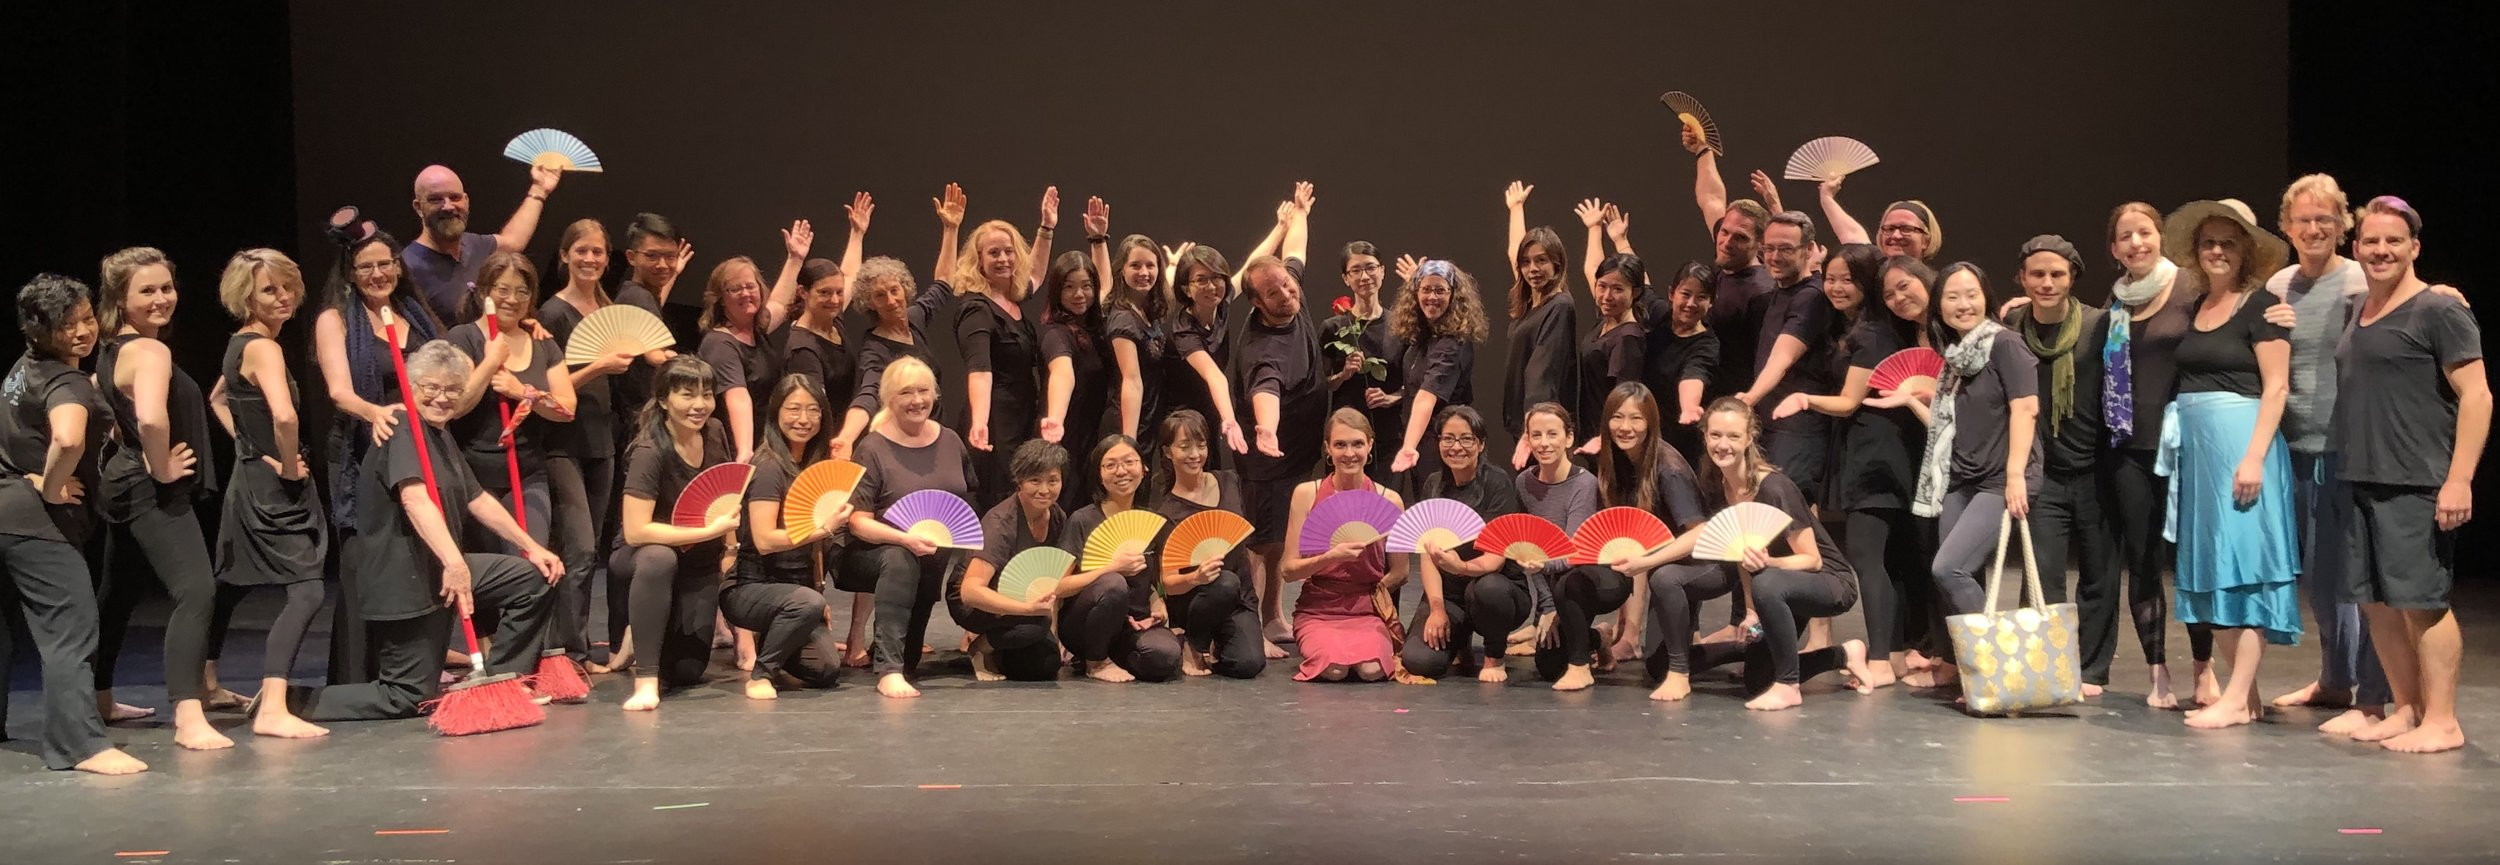 Congratulations to the dancers, musicians and faculty who made the 2019 Dalcroze™ Academy so memorable!